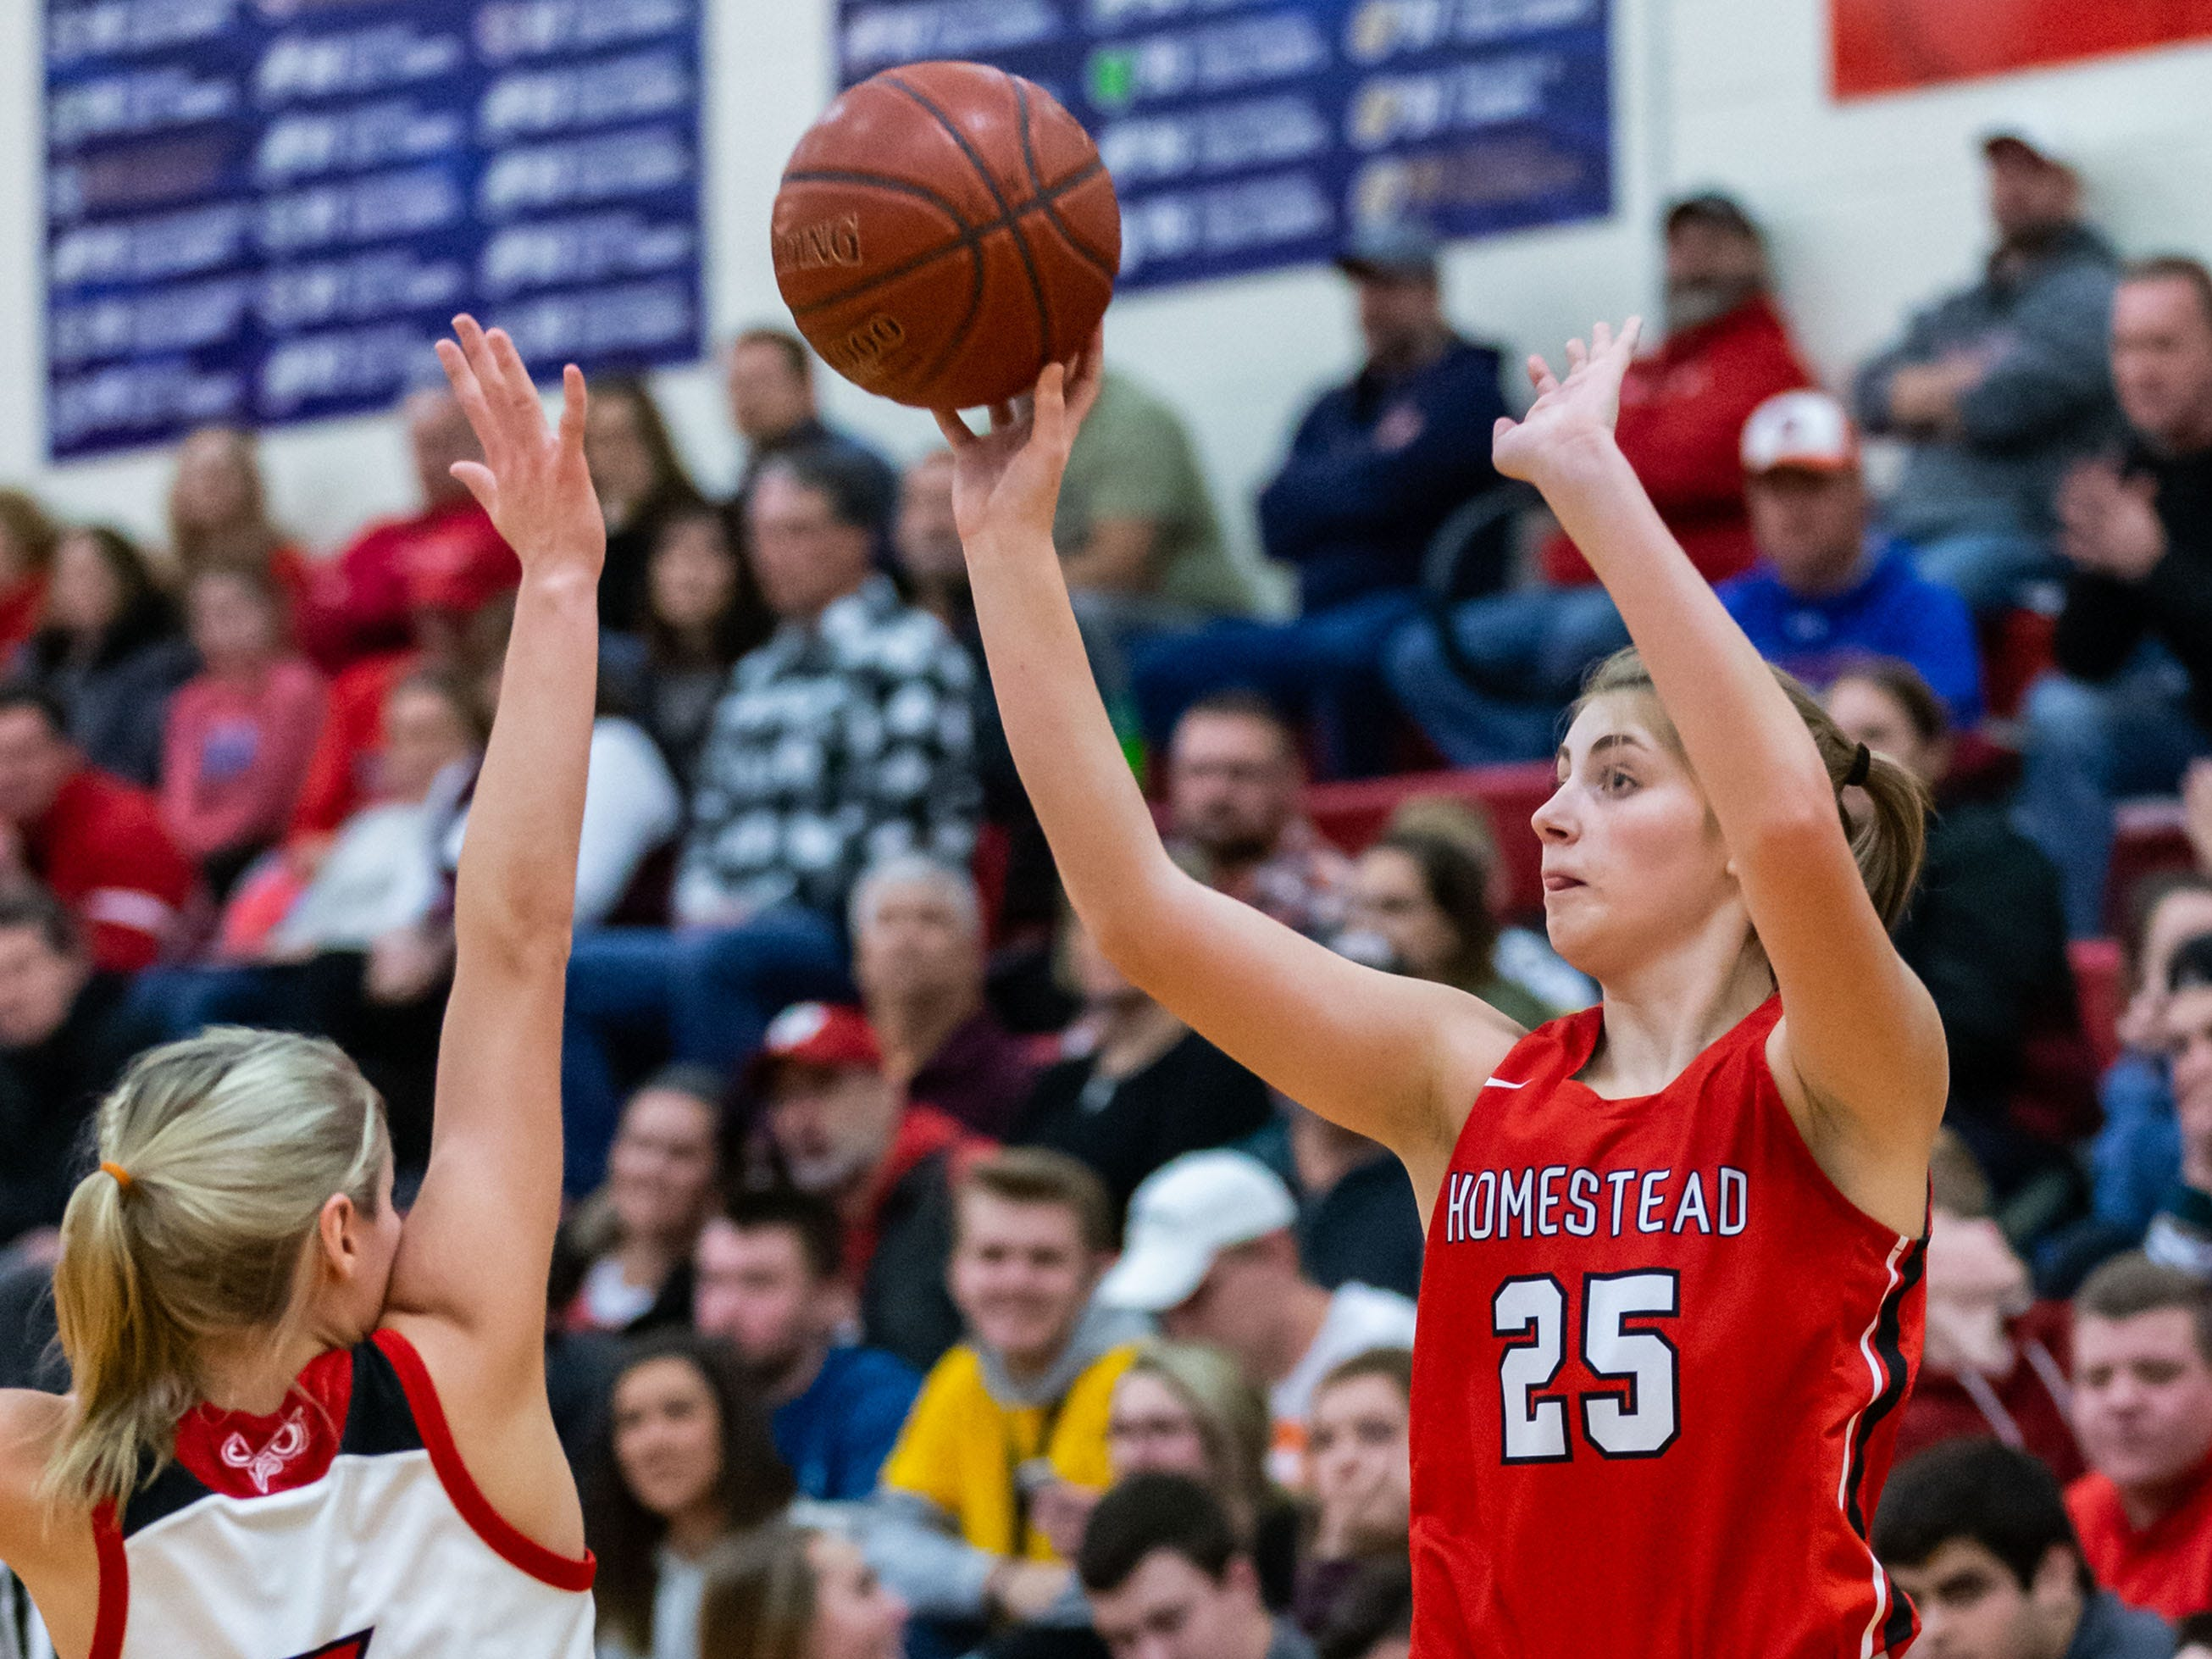 Homestead's Lexi Buzzell (25) elevates for a shot over Slinger's Sydney Reinhardt (5) during the game at Slinger on Friday, Jan. 11, 2019.